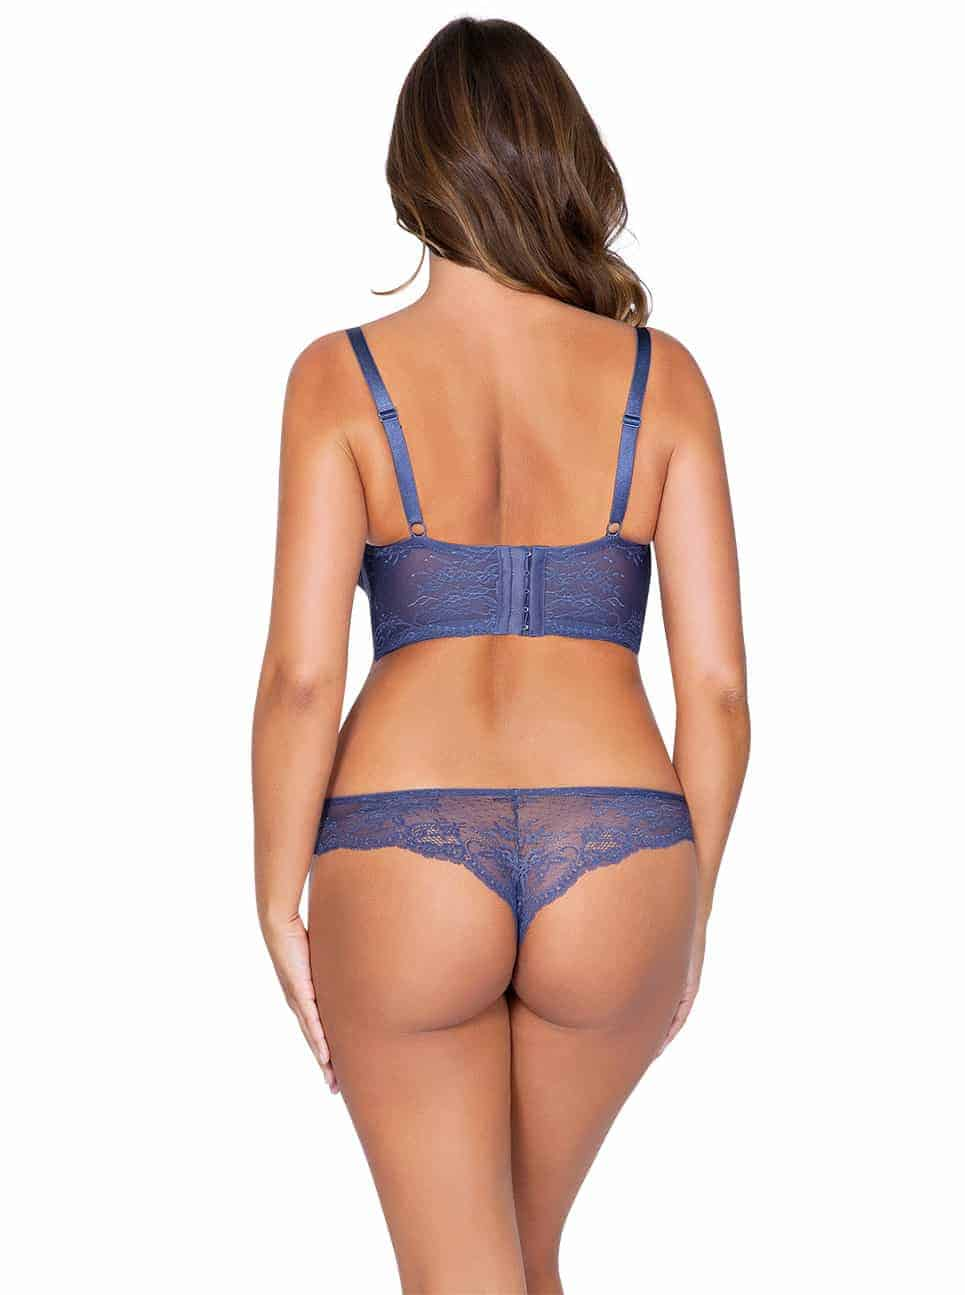 Sandrine P5351 PlungeLongline P5354 BrazillianThong FrenchBlueBack copy 2 - Sandrine Brazilian Thong - French Blue - P5354